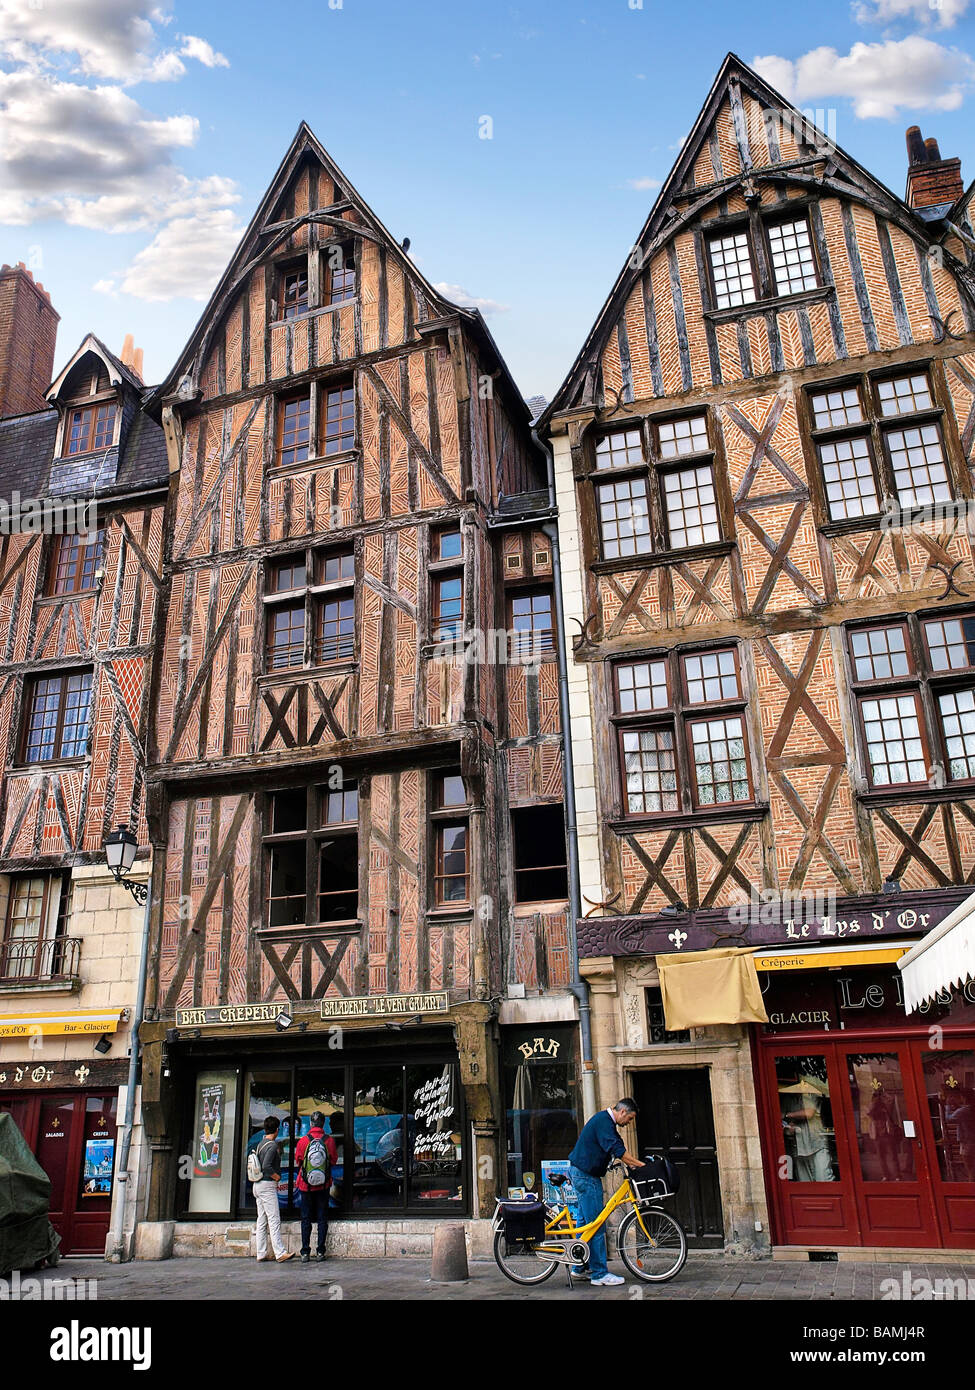 Typical frontage at Plumereau place, Tours, France. - Stock Image